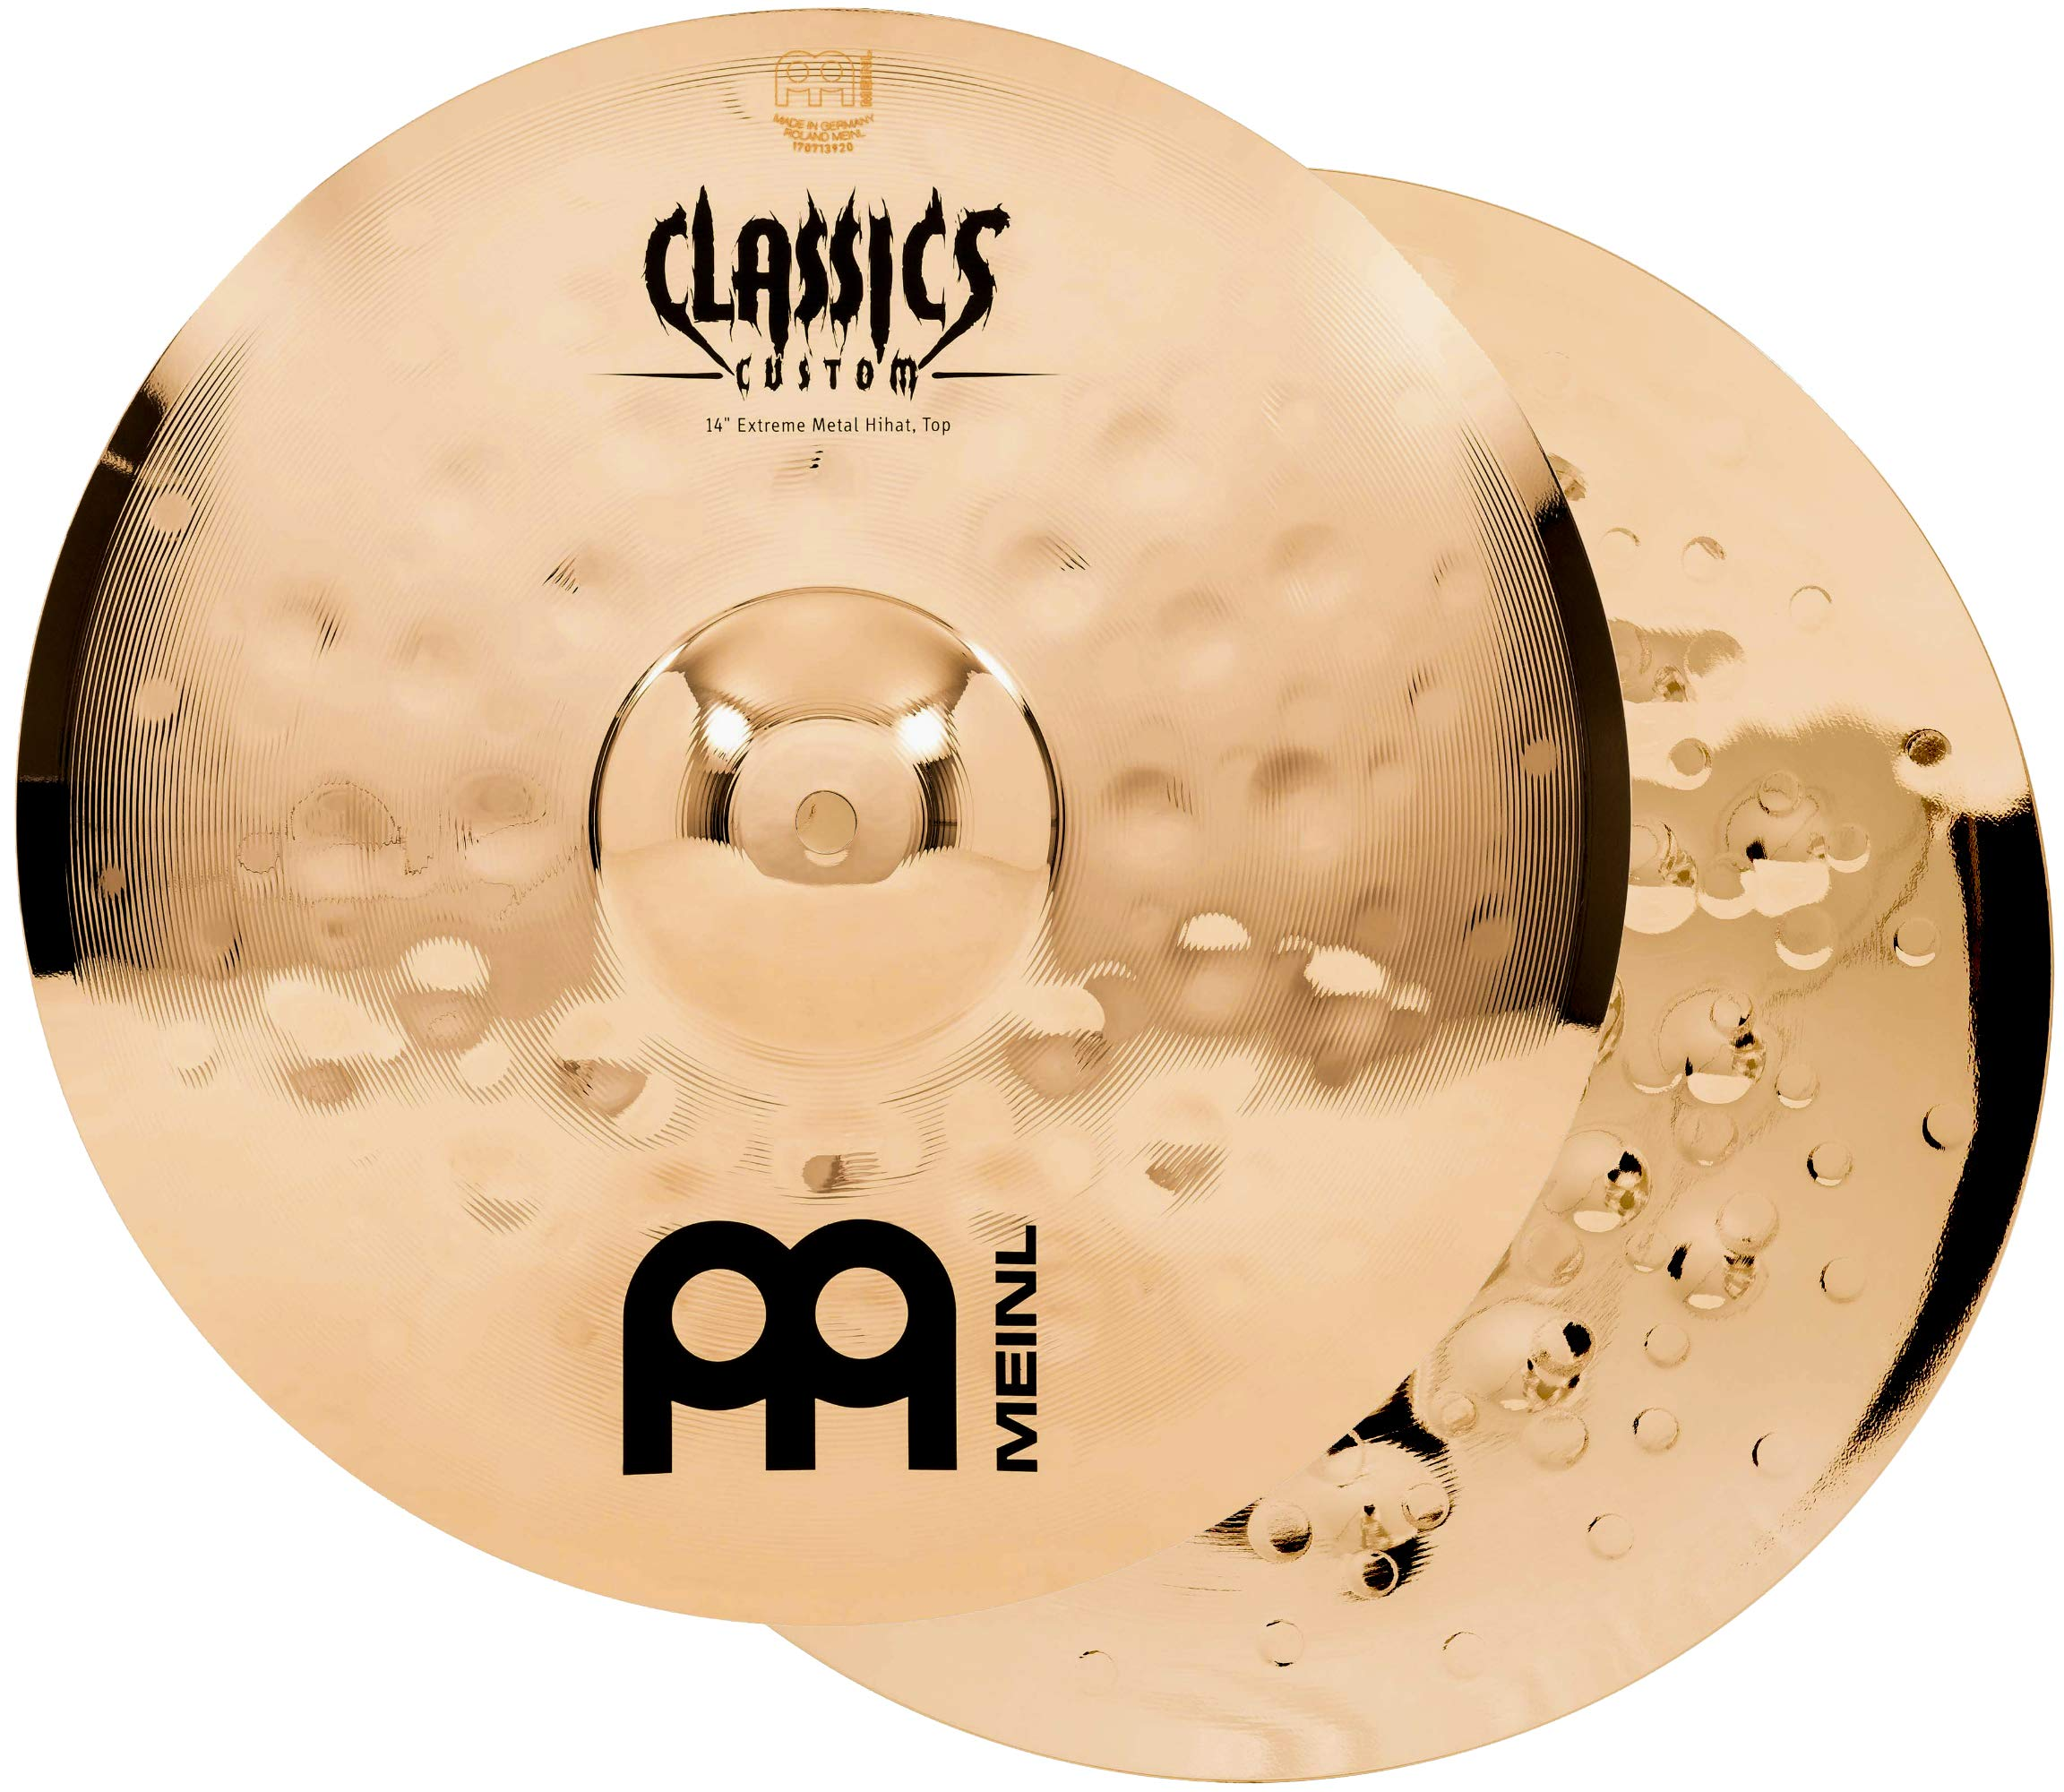 Meinl 14'' Hihat (Hi Hat) Cymbal Pair - Classics Custom Extreme Metal - Made in Germany, 2-YEAR WARRANTY (CC14EMH-B)